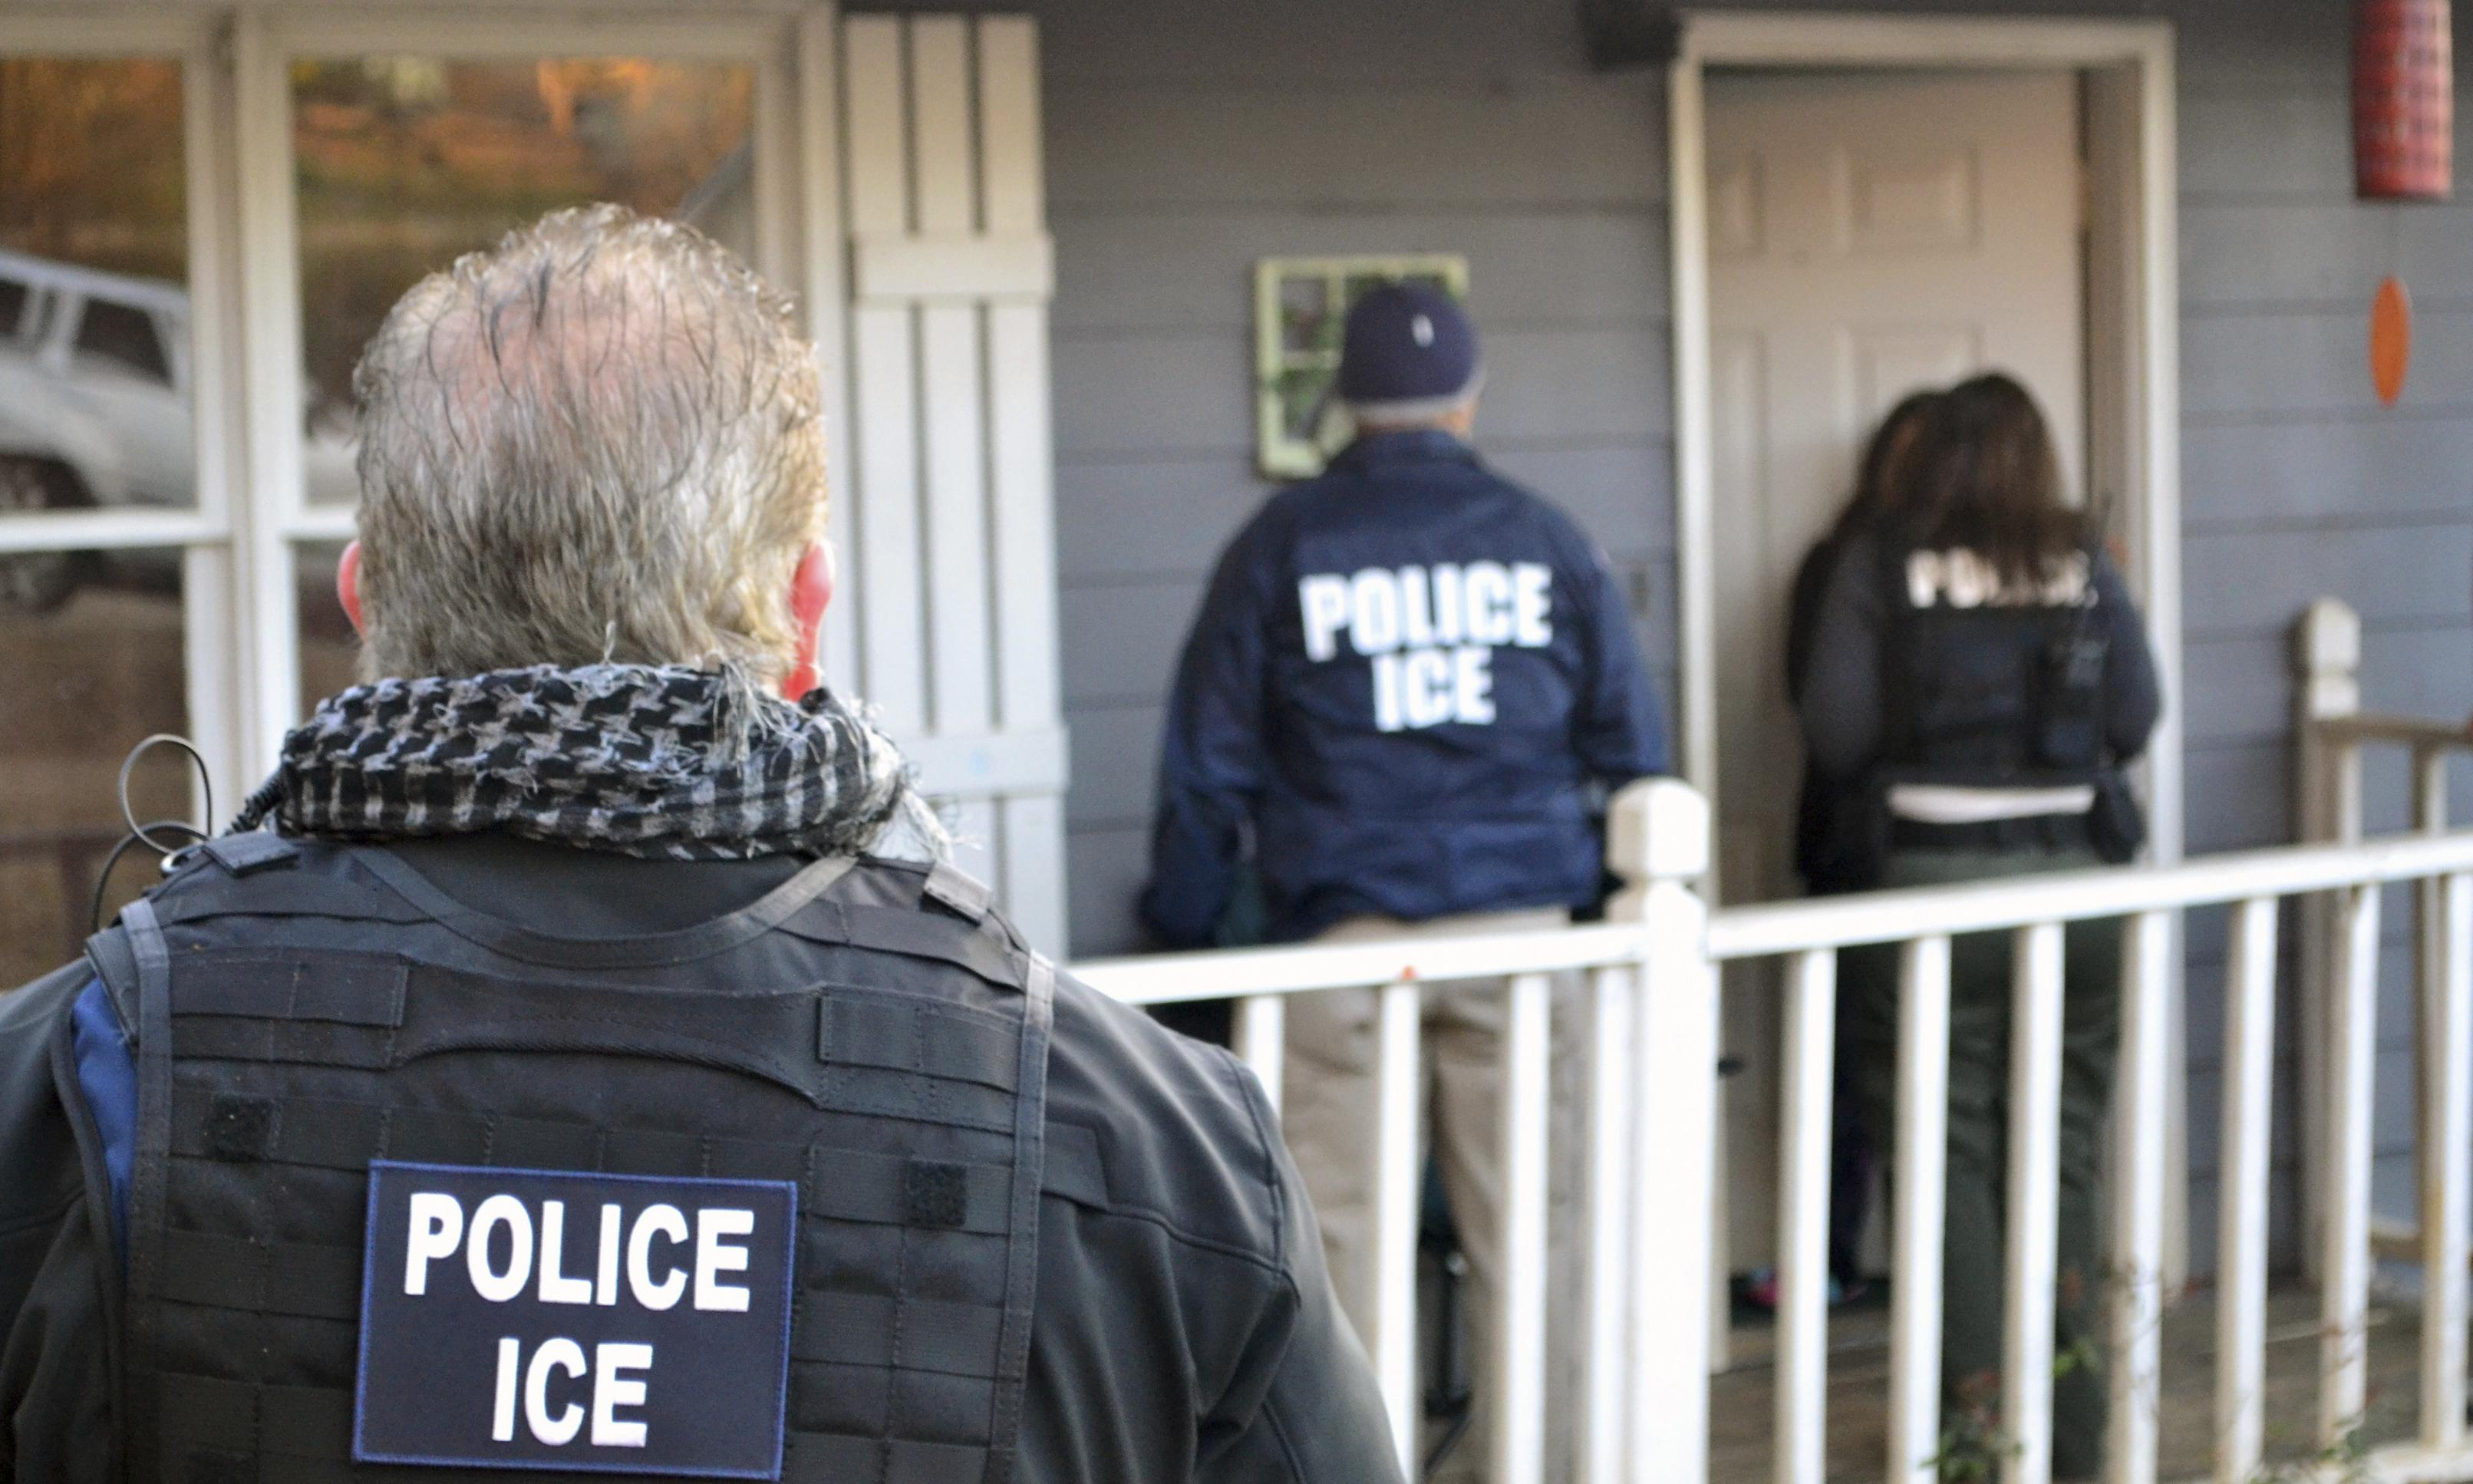 Honduran woman accuses immigration agent of sexual assault over seven years